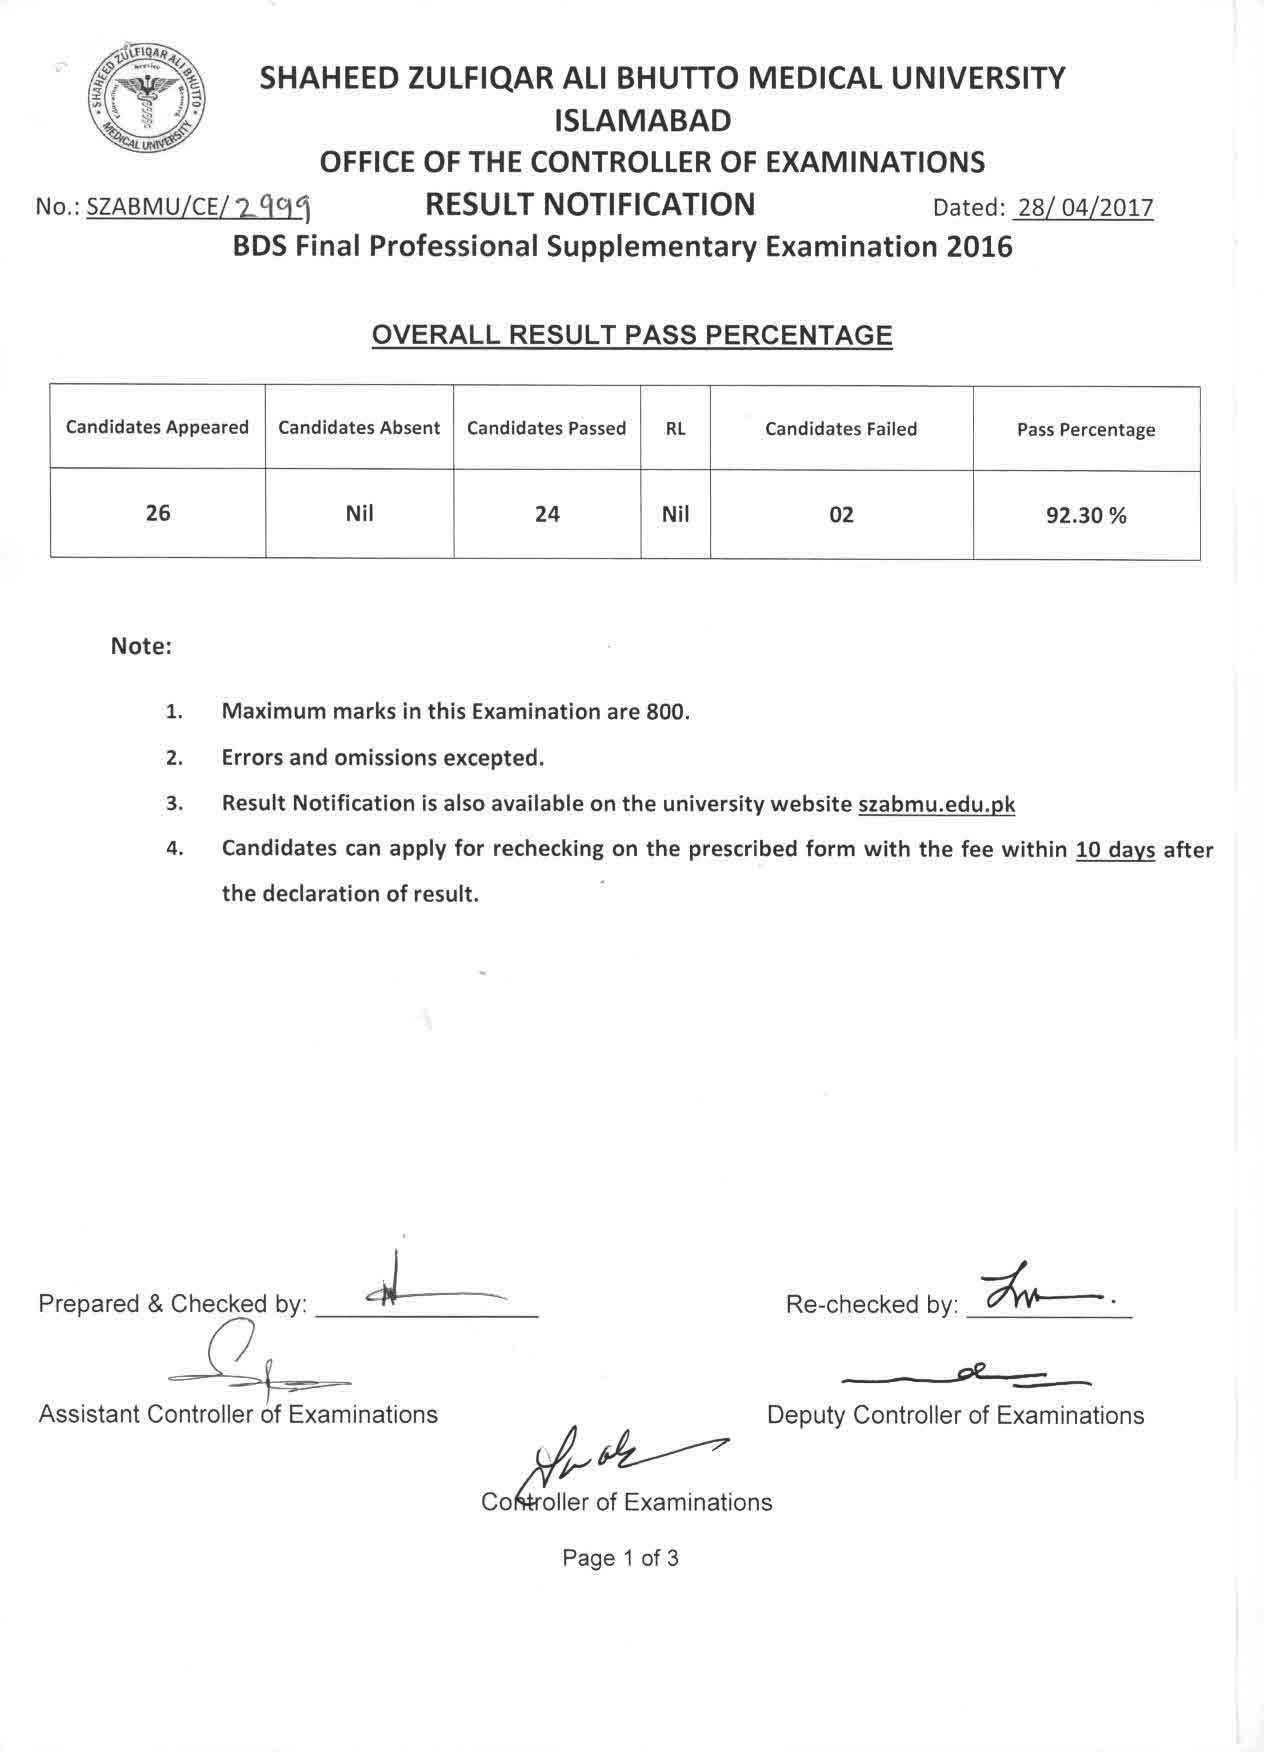 Result Notification - BDS Final Professional Supplementary Exams 2016